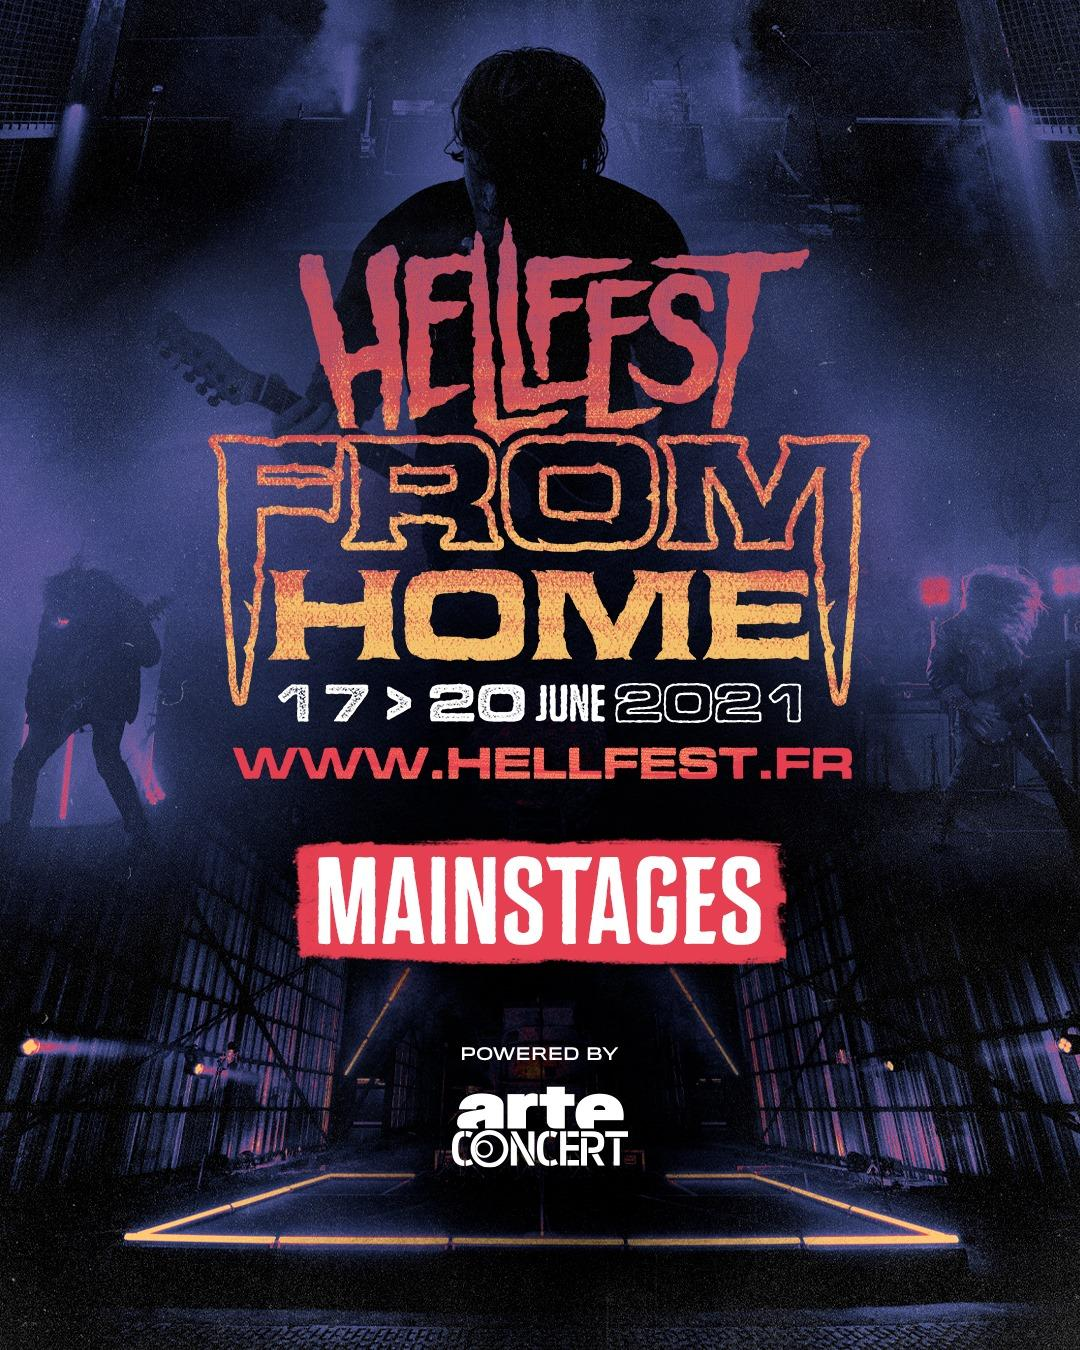 Hfh mainstages